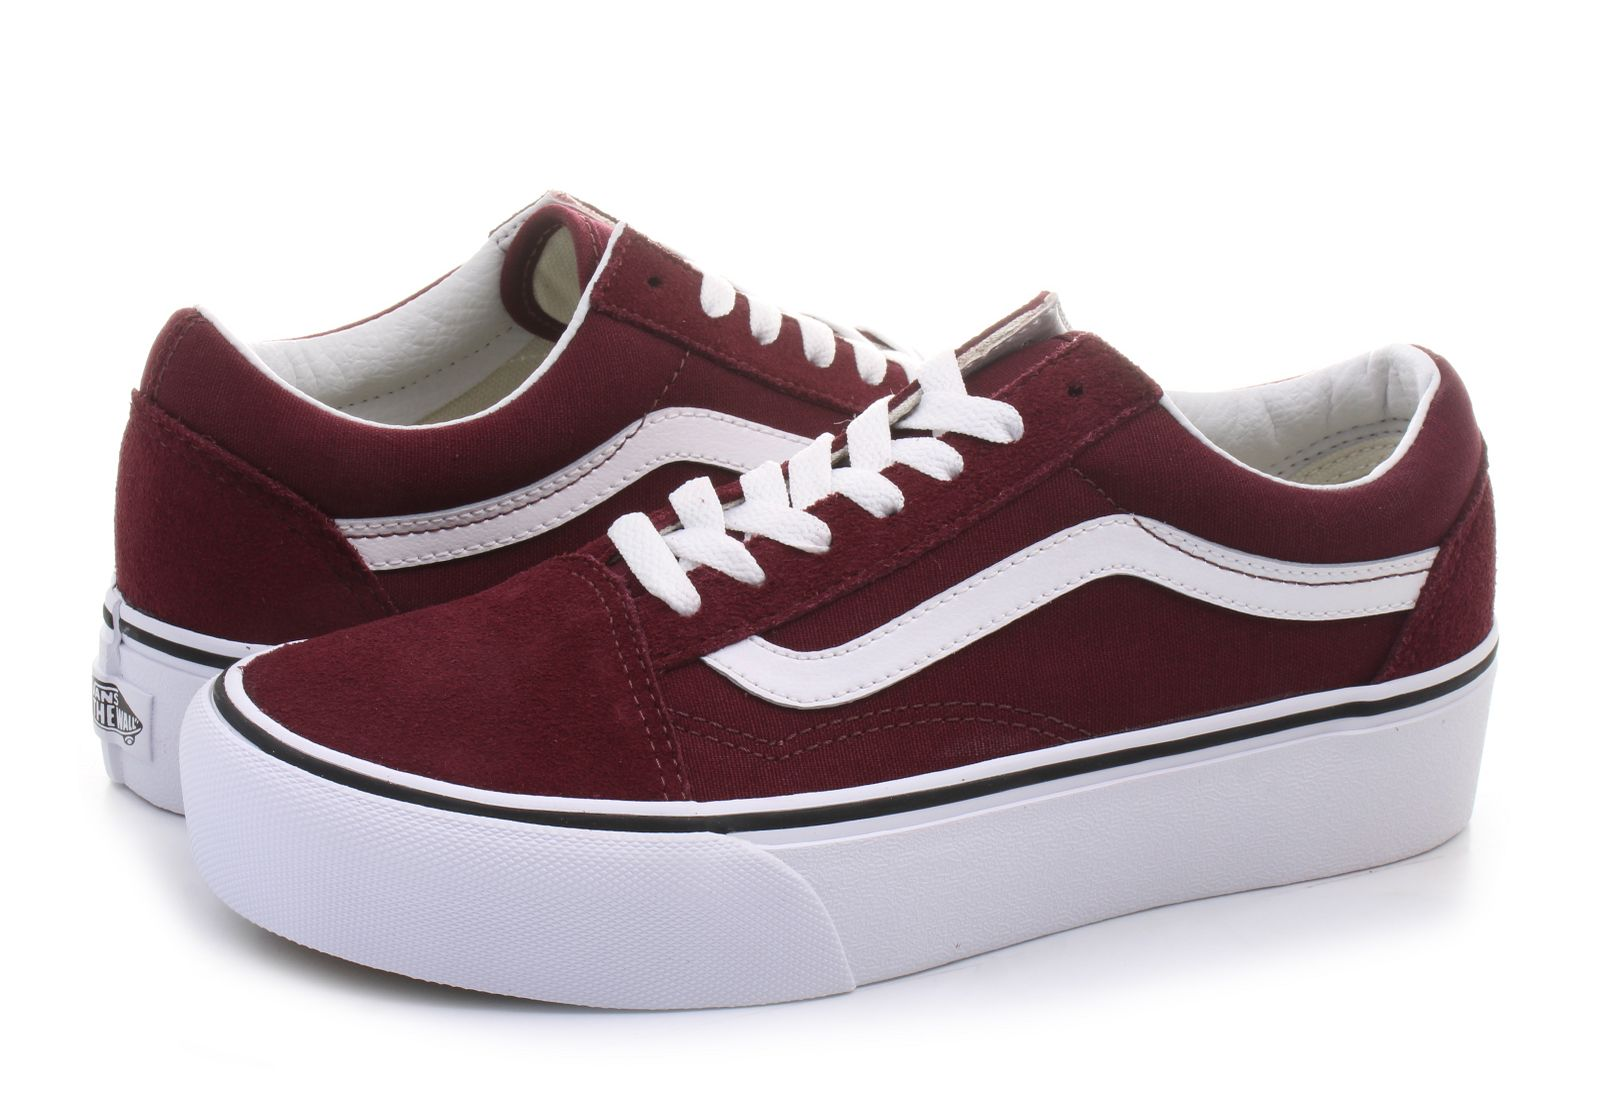 vans old skool damskie bordowe